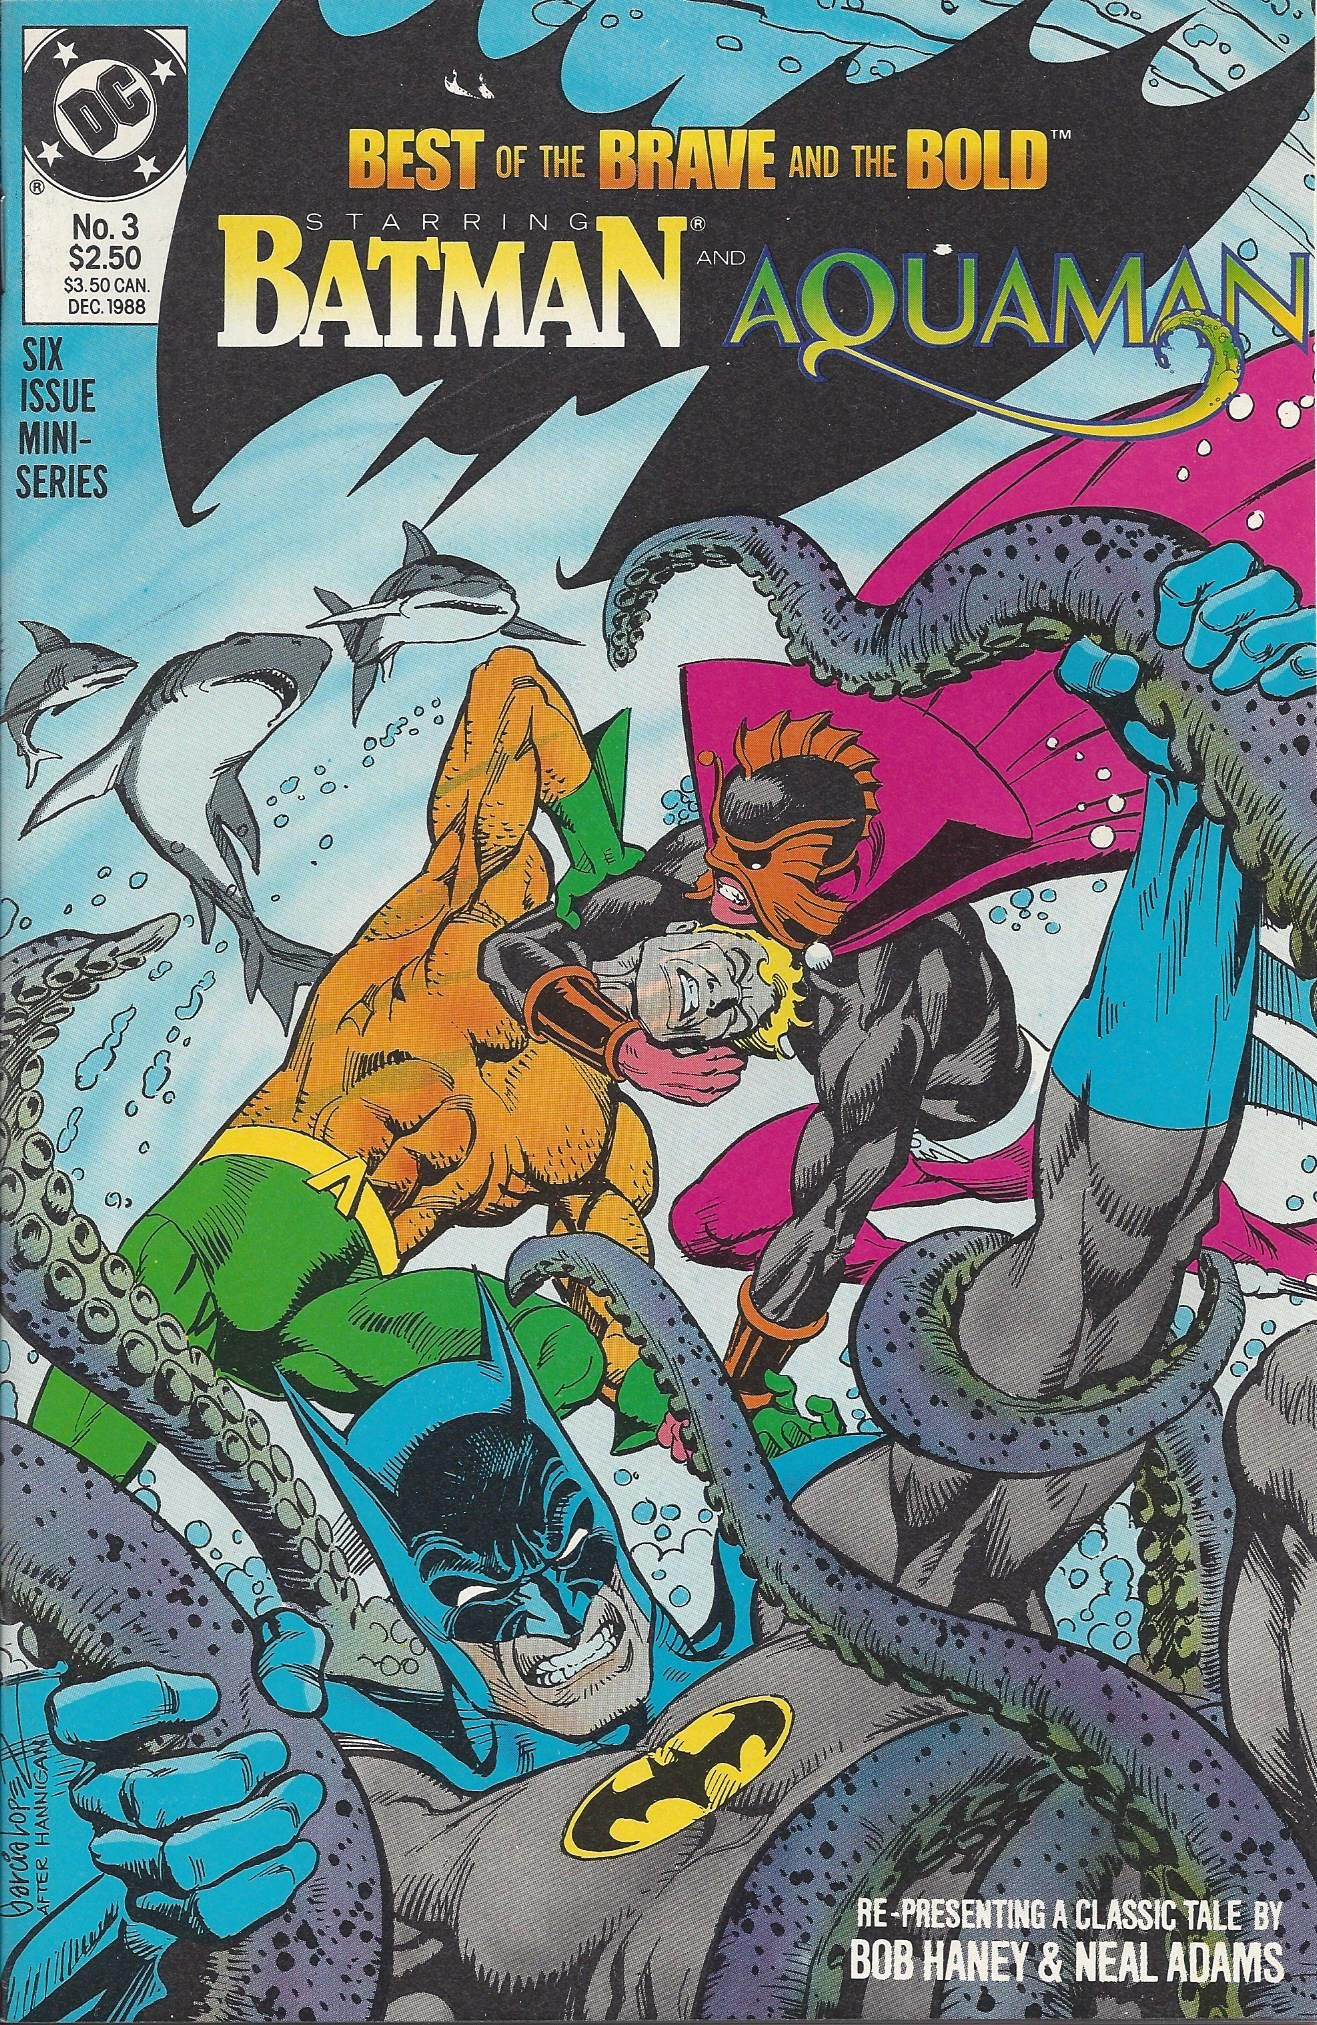 Best Of The Brave And The Bold 3 Of 6 Mini Series With Batman And